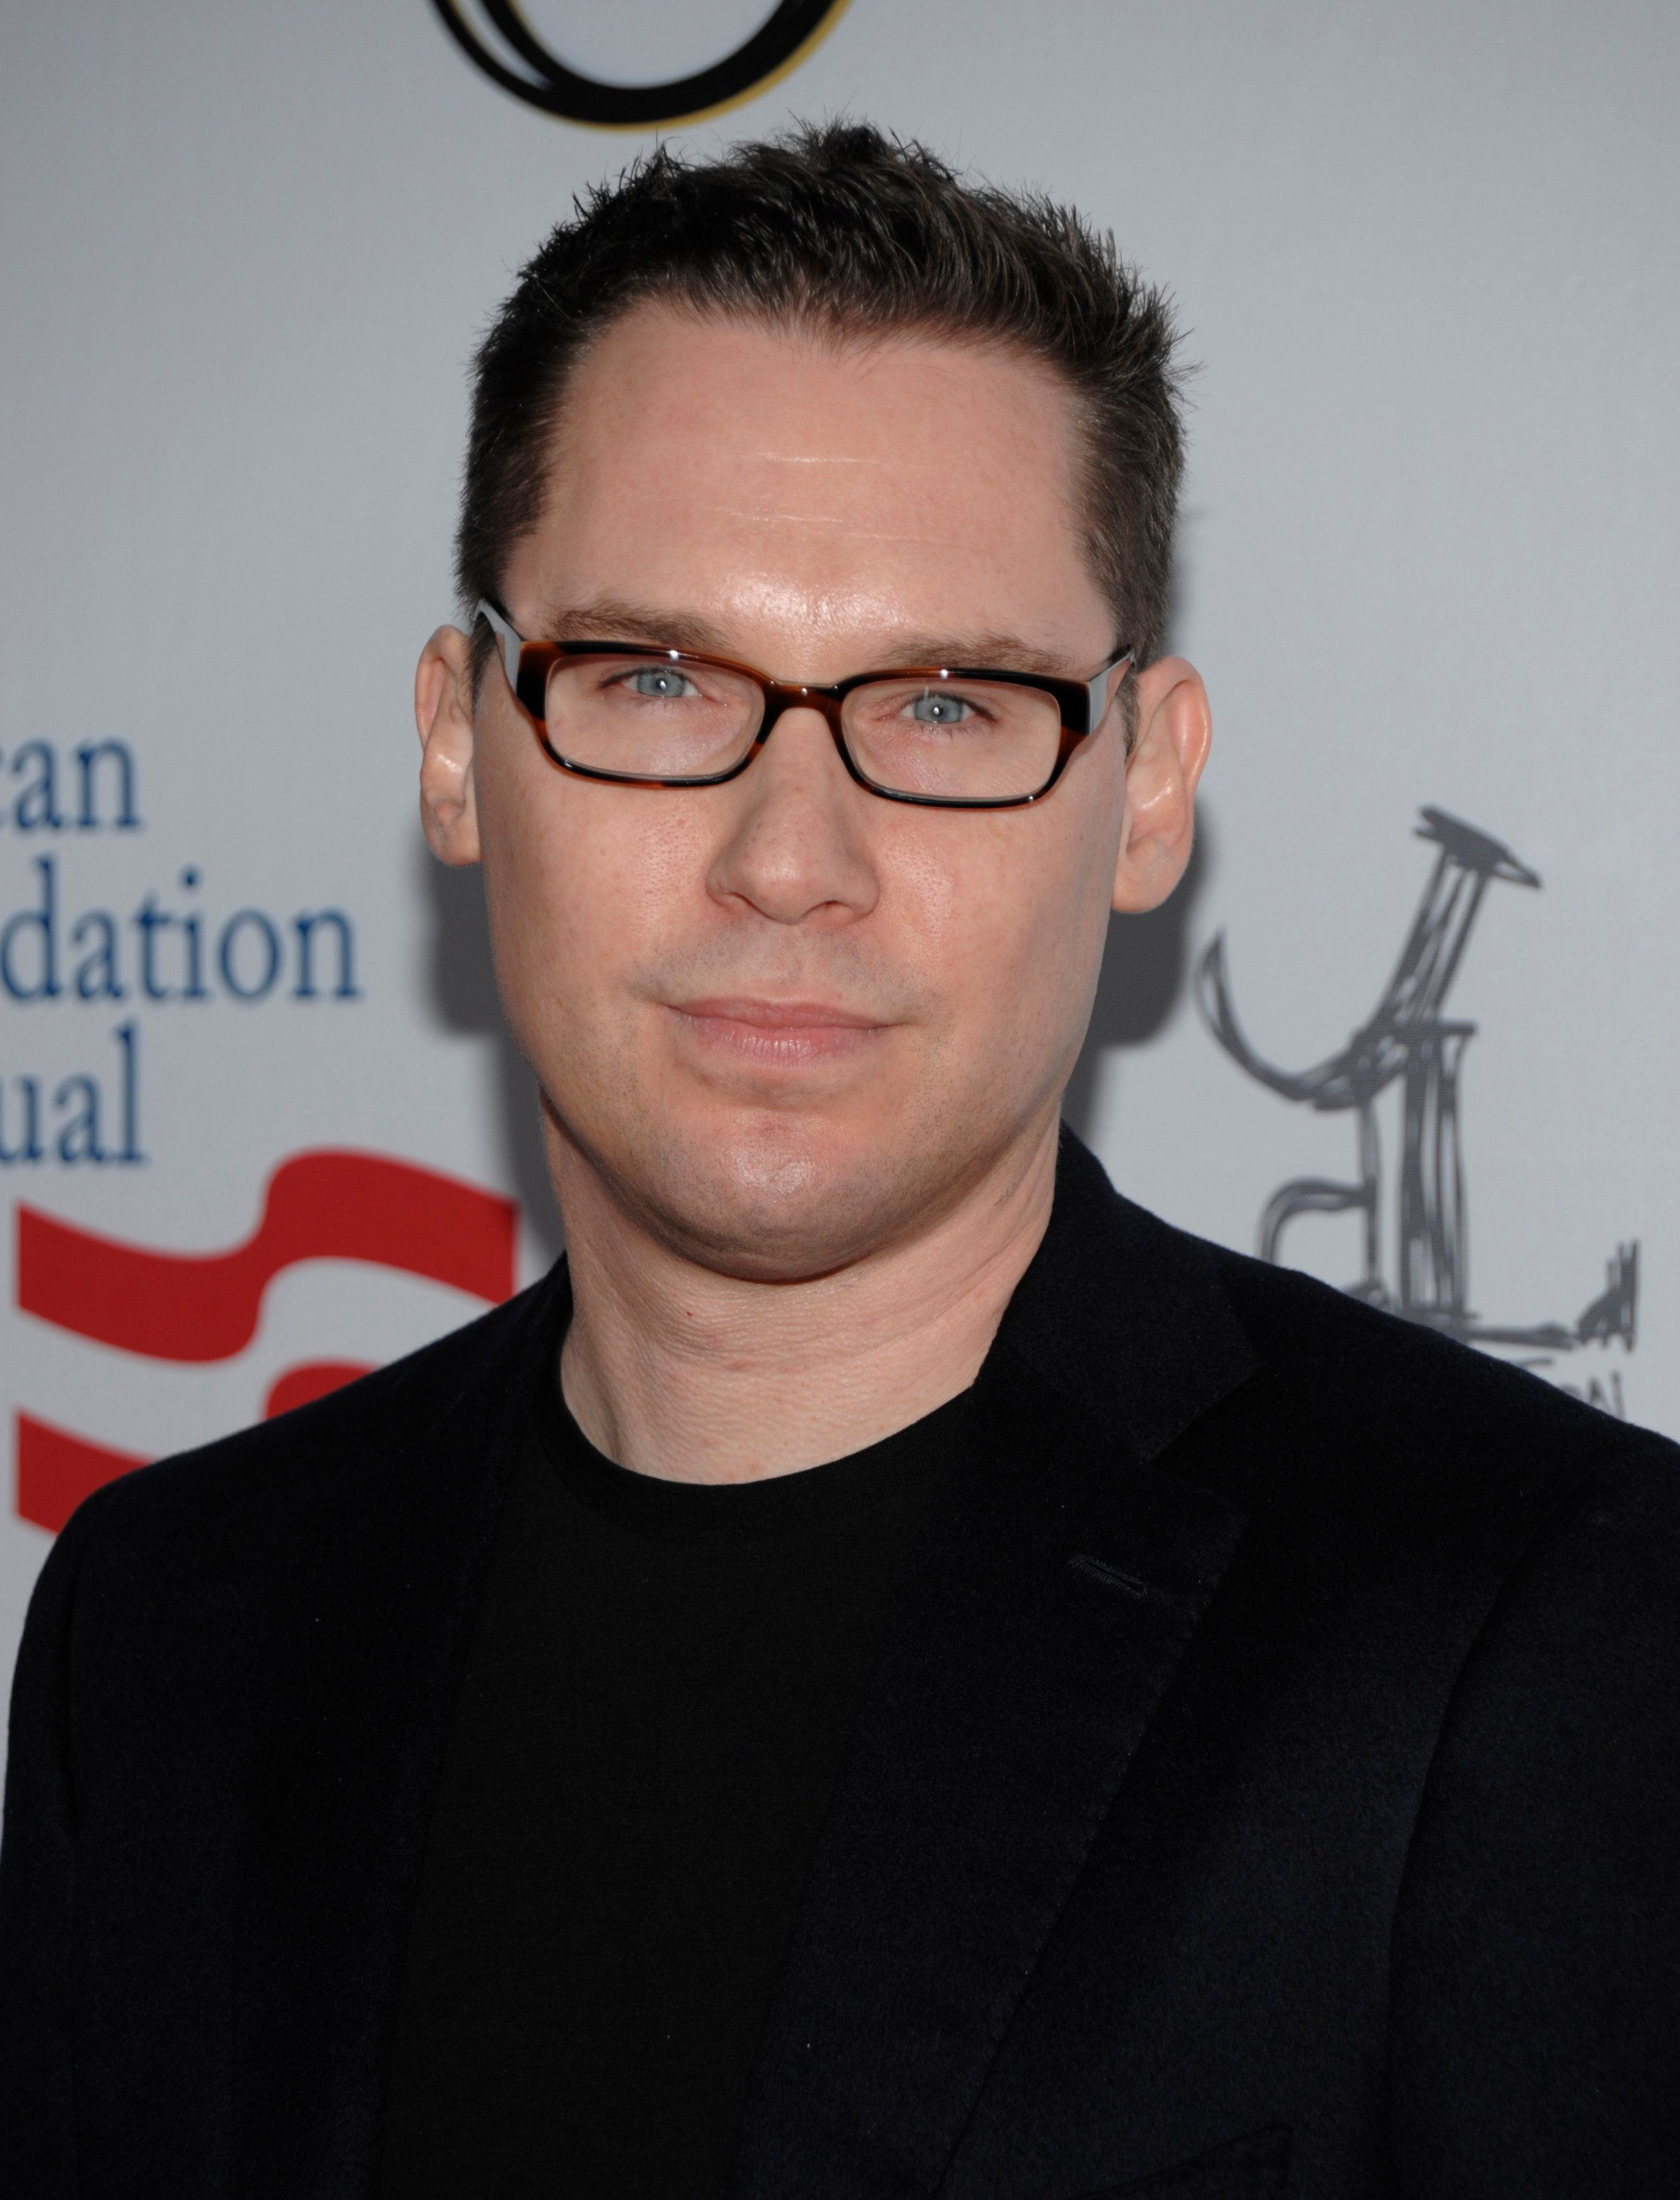 """FILE - In this March 3, 2012 file photo, director Bryan Singer arrives at the Los Angeles premiere of the play """"8"""" in Los Angeles.  Singer released a statement on Thursday, April 24, 2014, denying allegations by Michael Egan III that the director sexually assaulted him when he was underage in 1999 and called them """"outrageous, vicious and completely false."""" The director of the upcoming film """"X-Men: Days of Future Past"""" also said he is avoiding media promotions of the film to avoid creating a distraction. (AP Photo/Dan Steinberg, file)"""